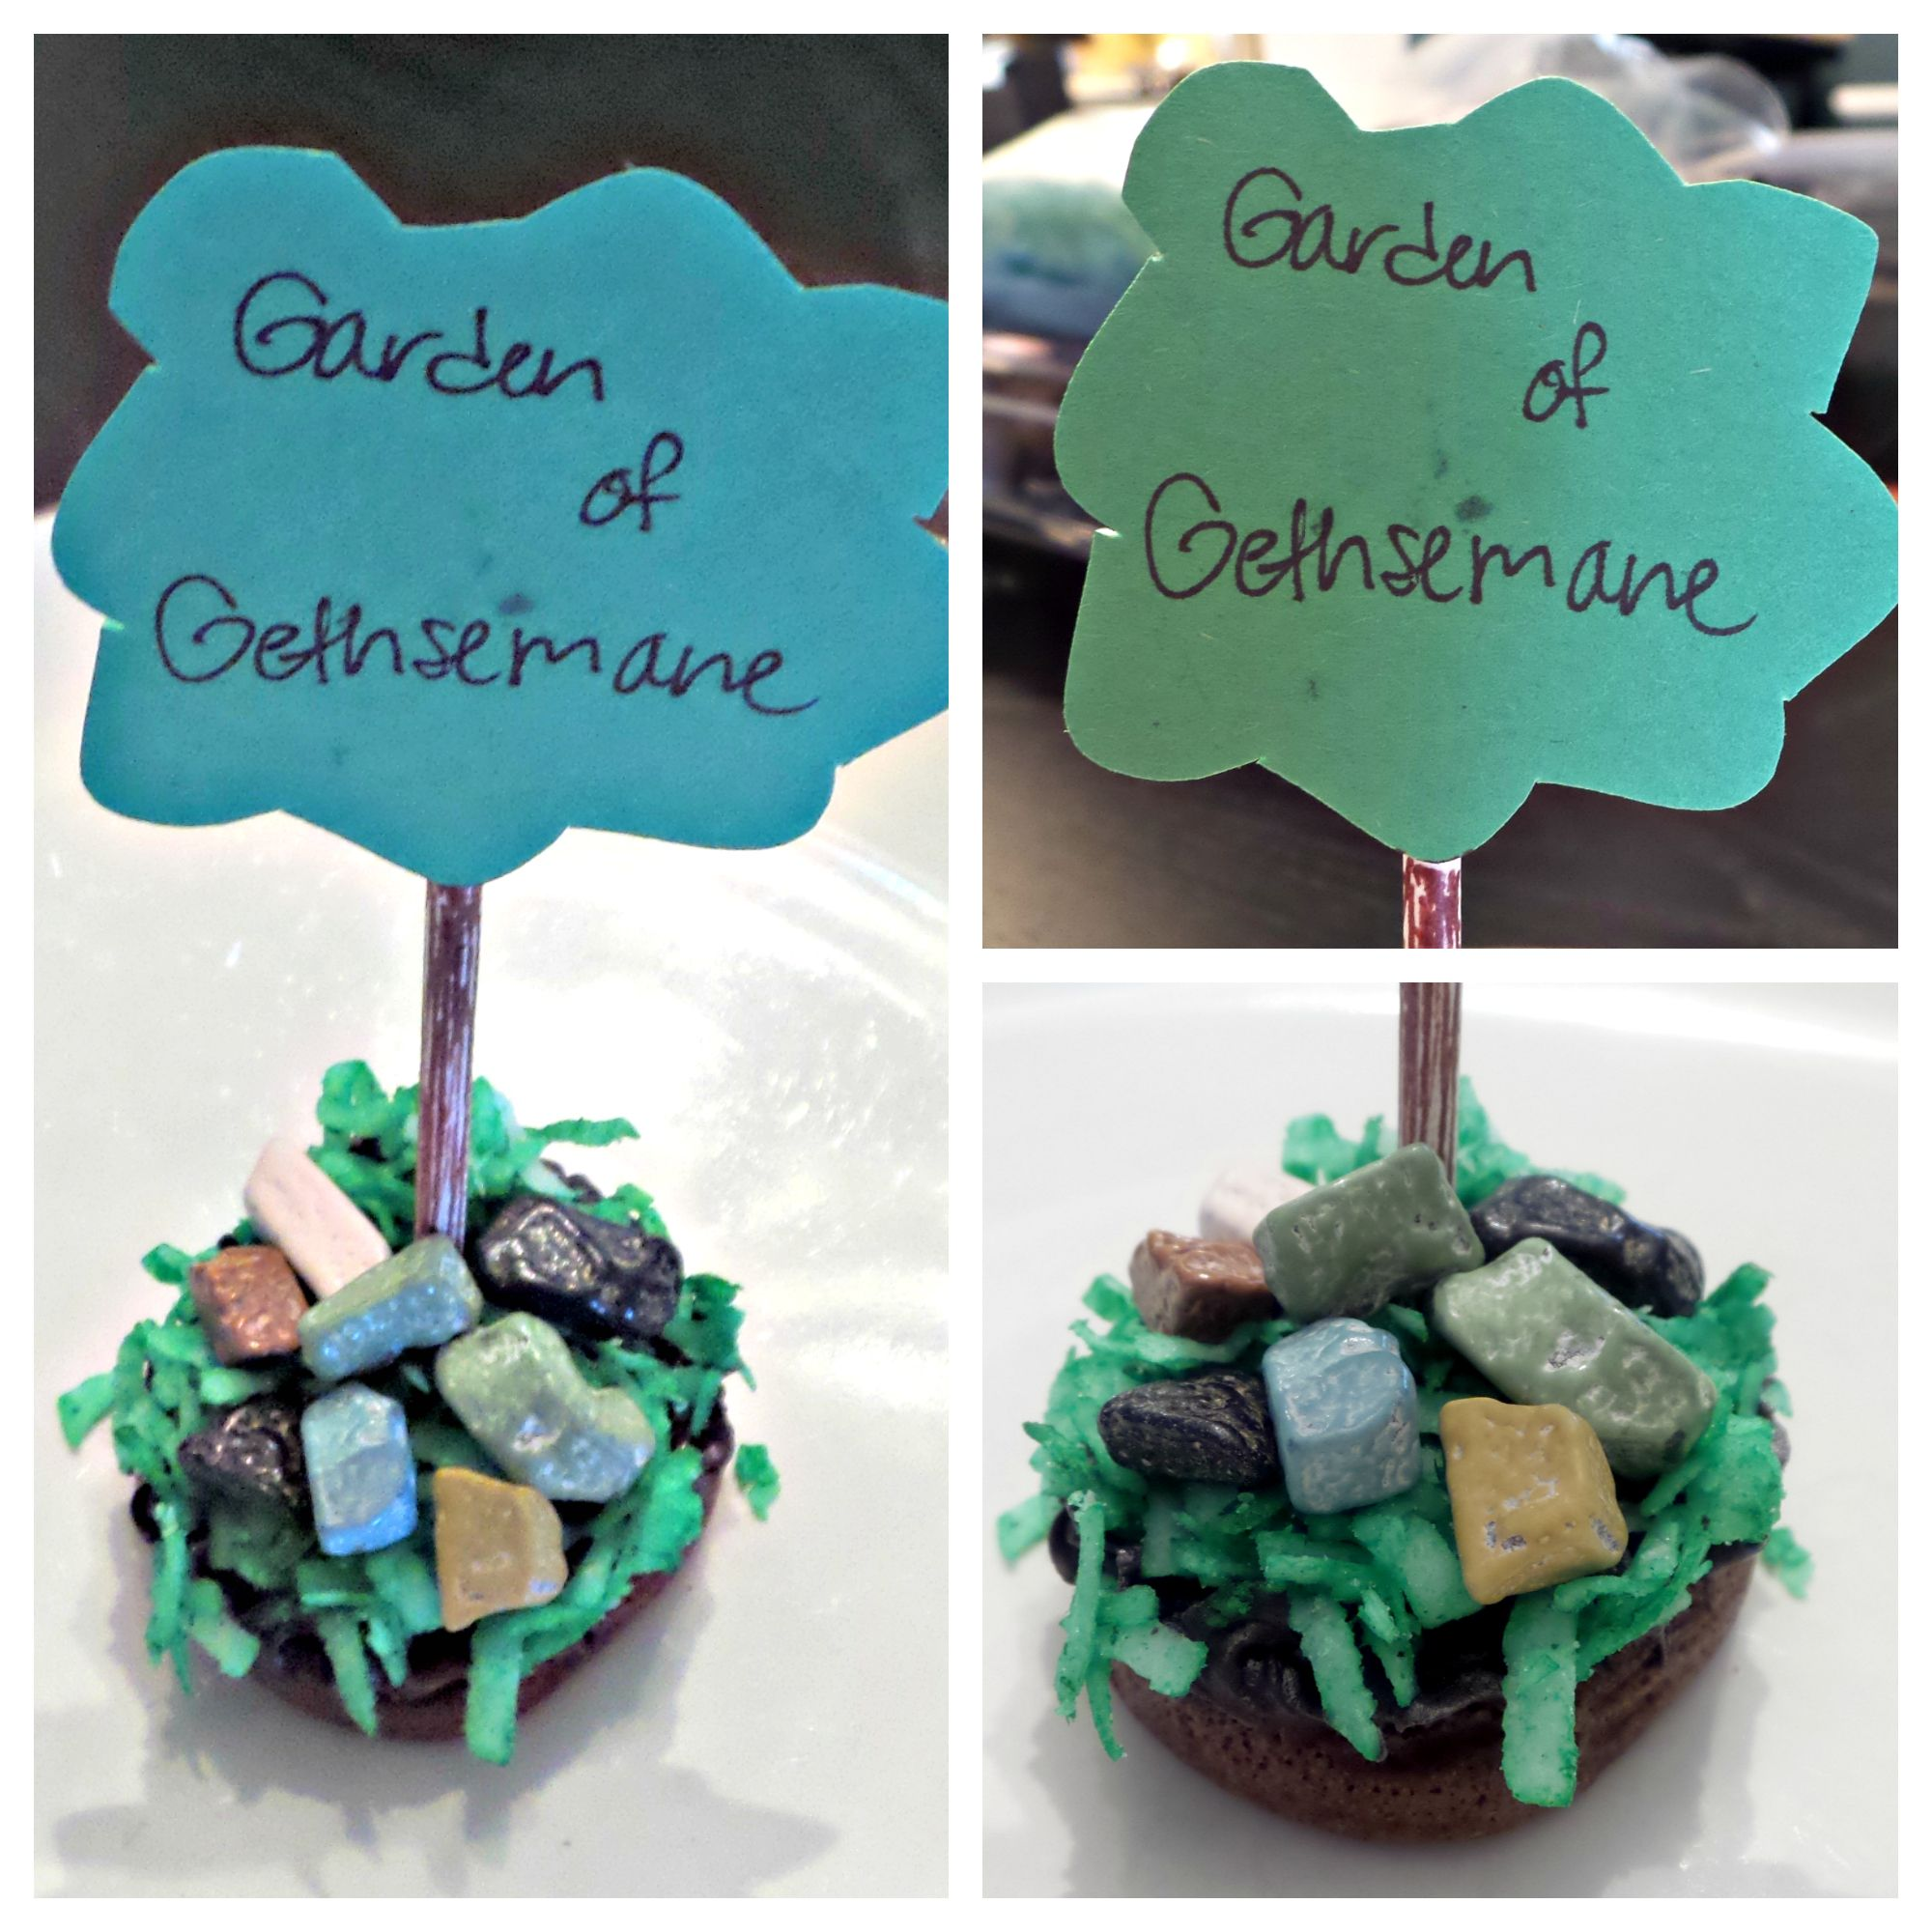 Garden of Gethsemane Cupcakes. We will be using this as a snack